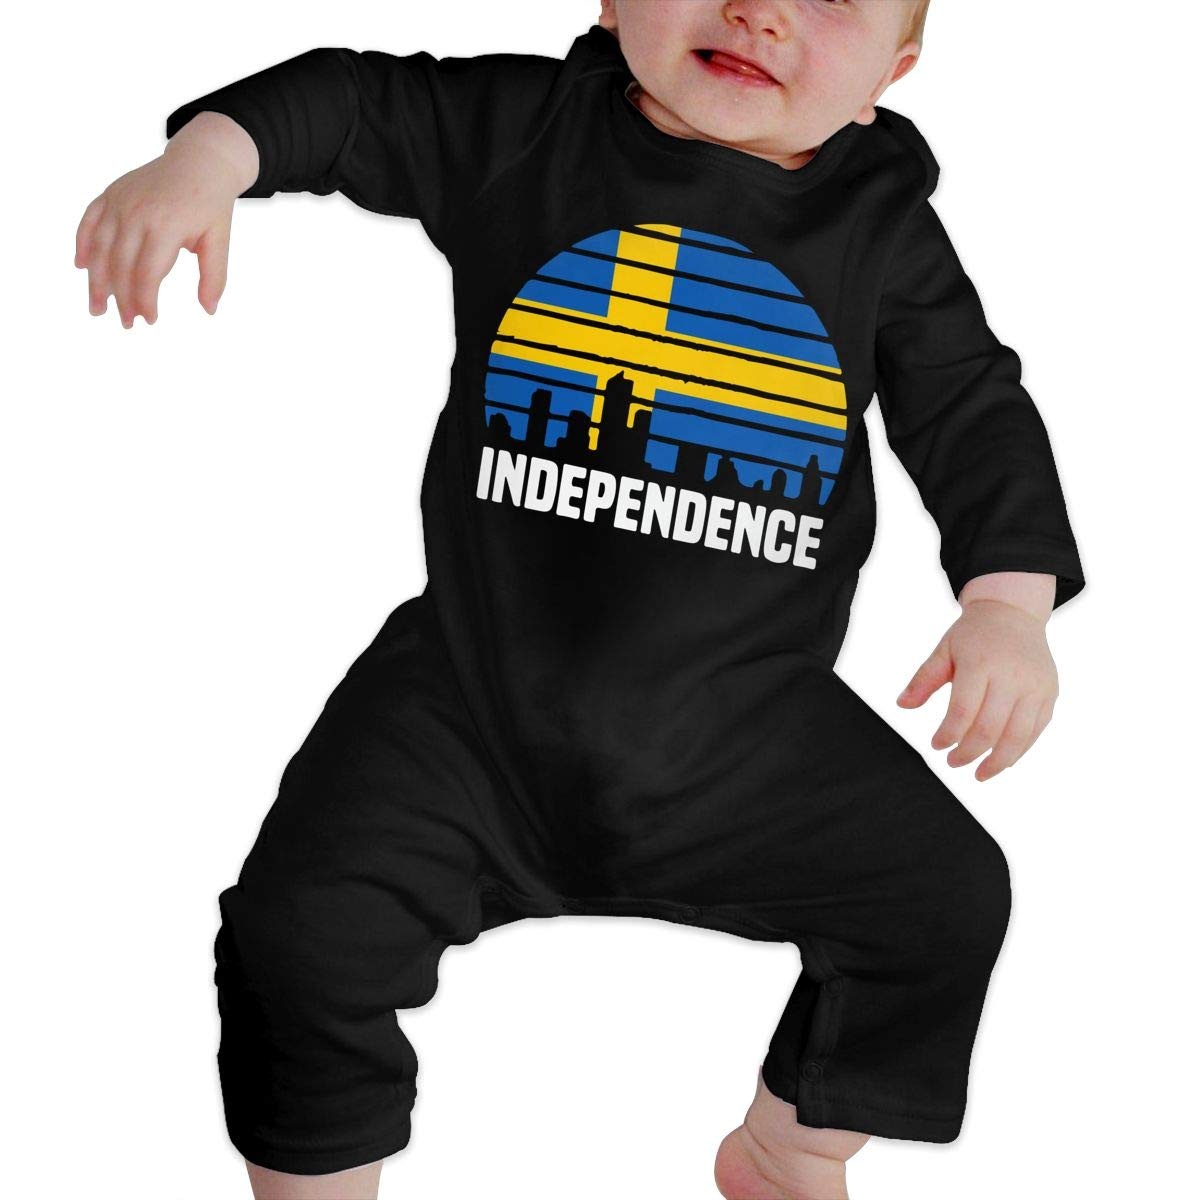 UGFGF-S3 Independence City Swedish Flag Baby Girl Long Sleeve Romper Jumpsuit Jumpsuit Onsies